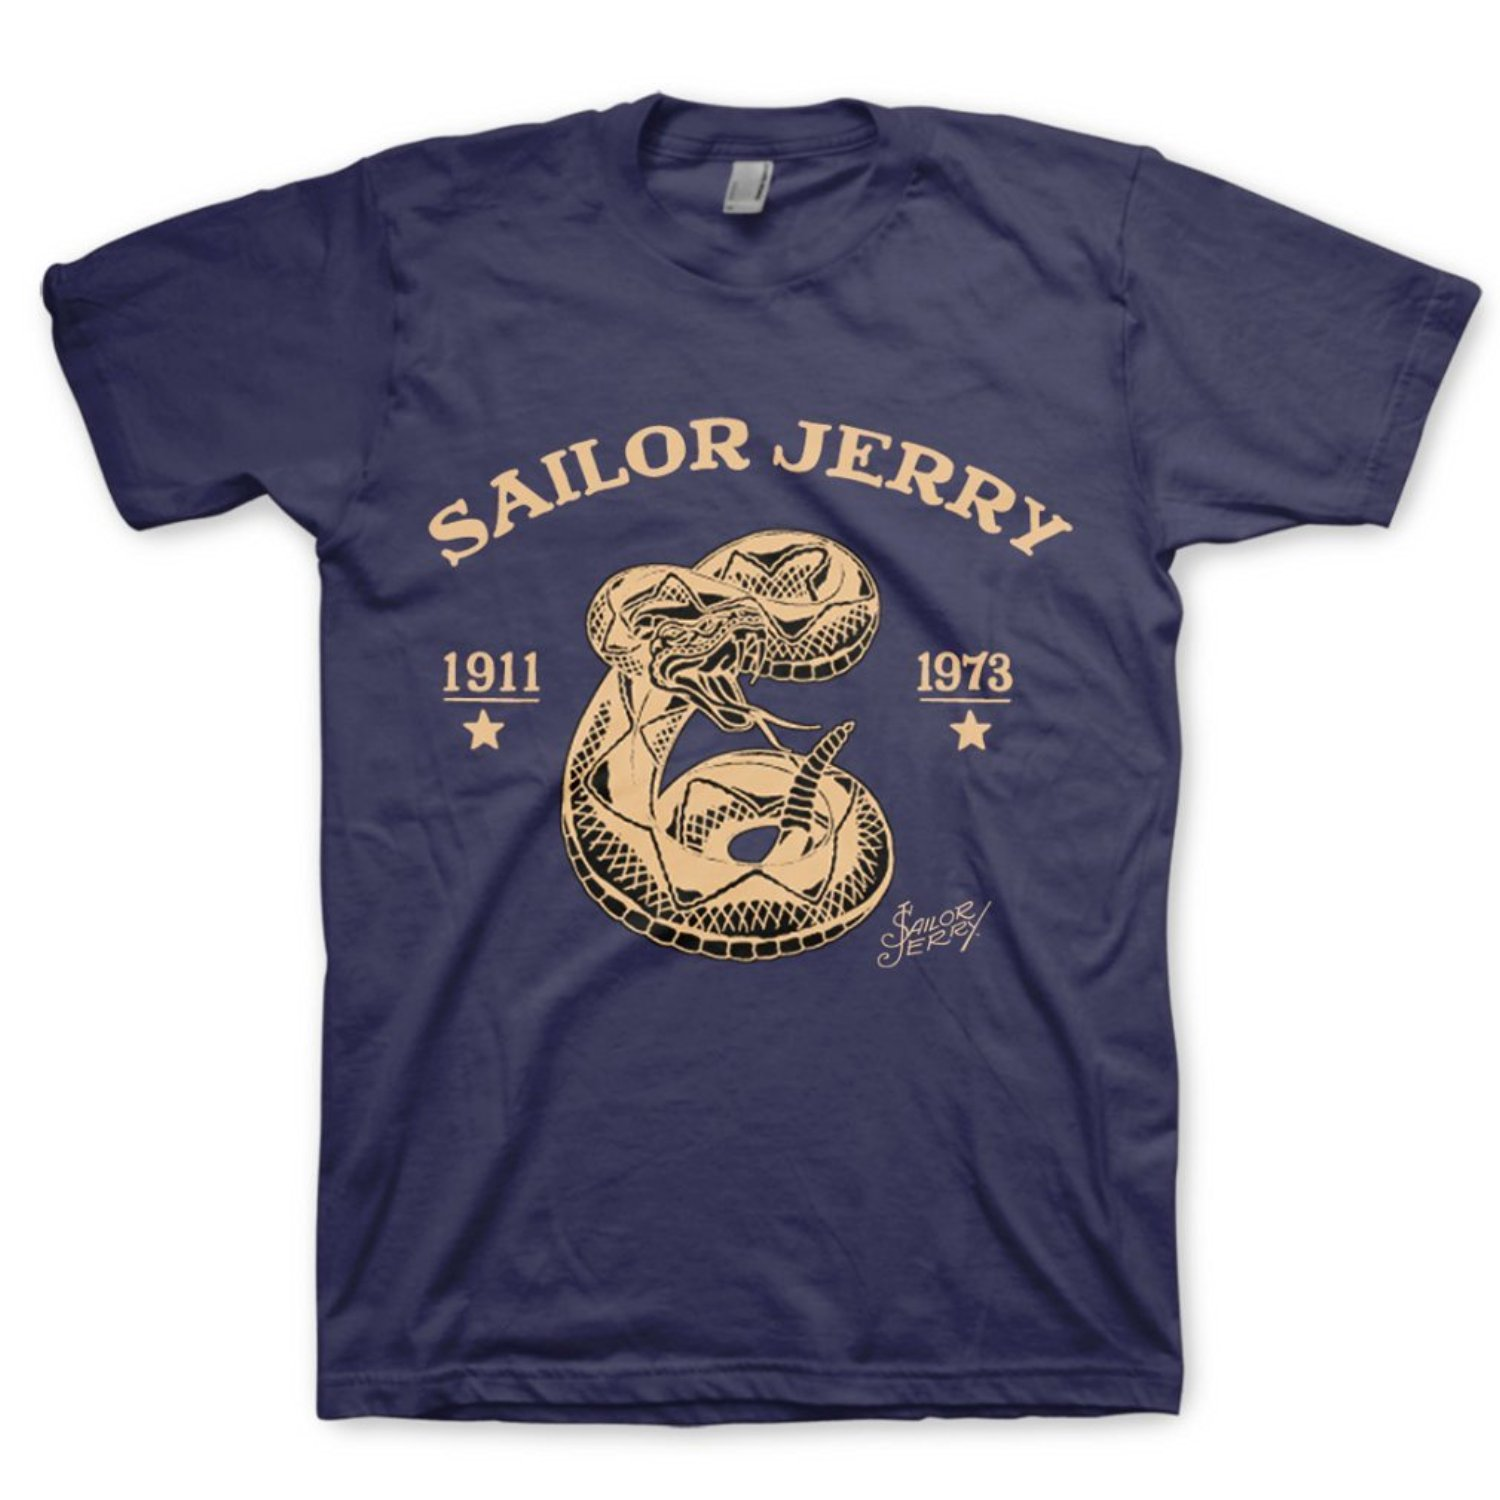 Sailor Jerry Tee Shirt